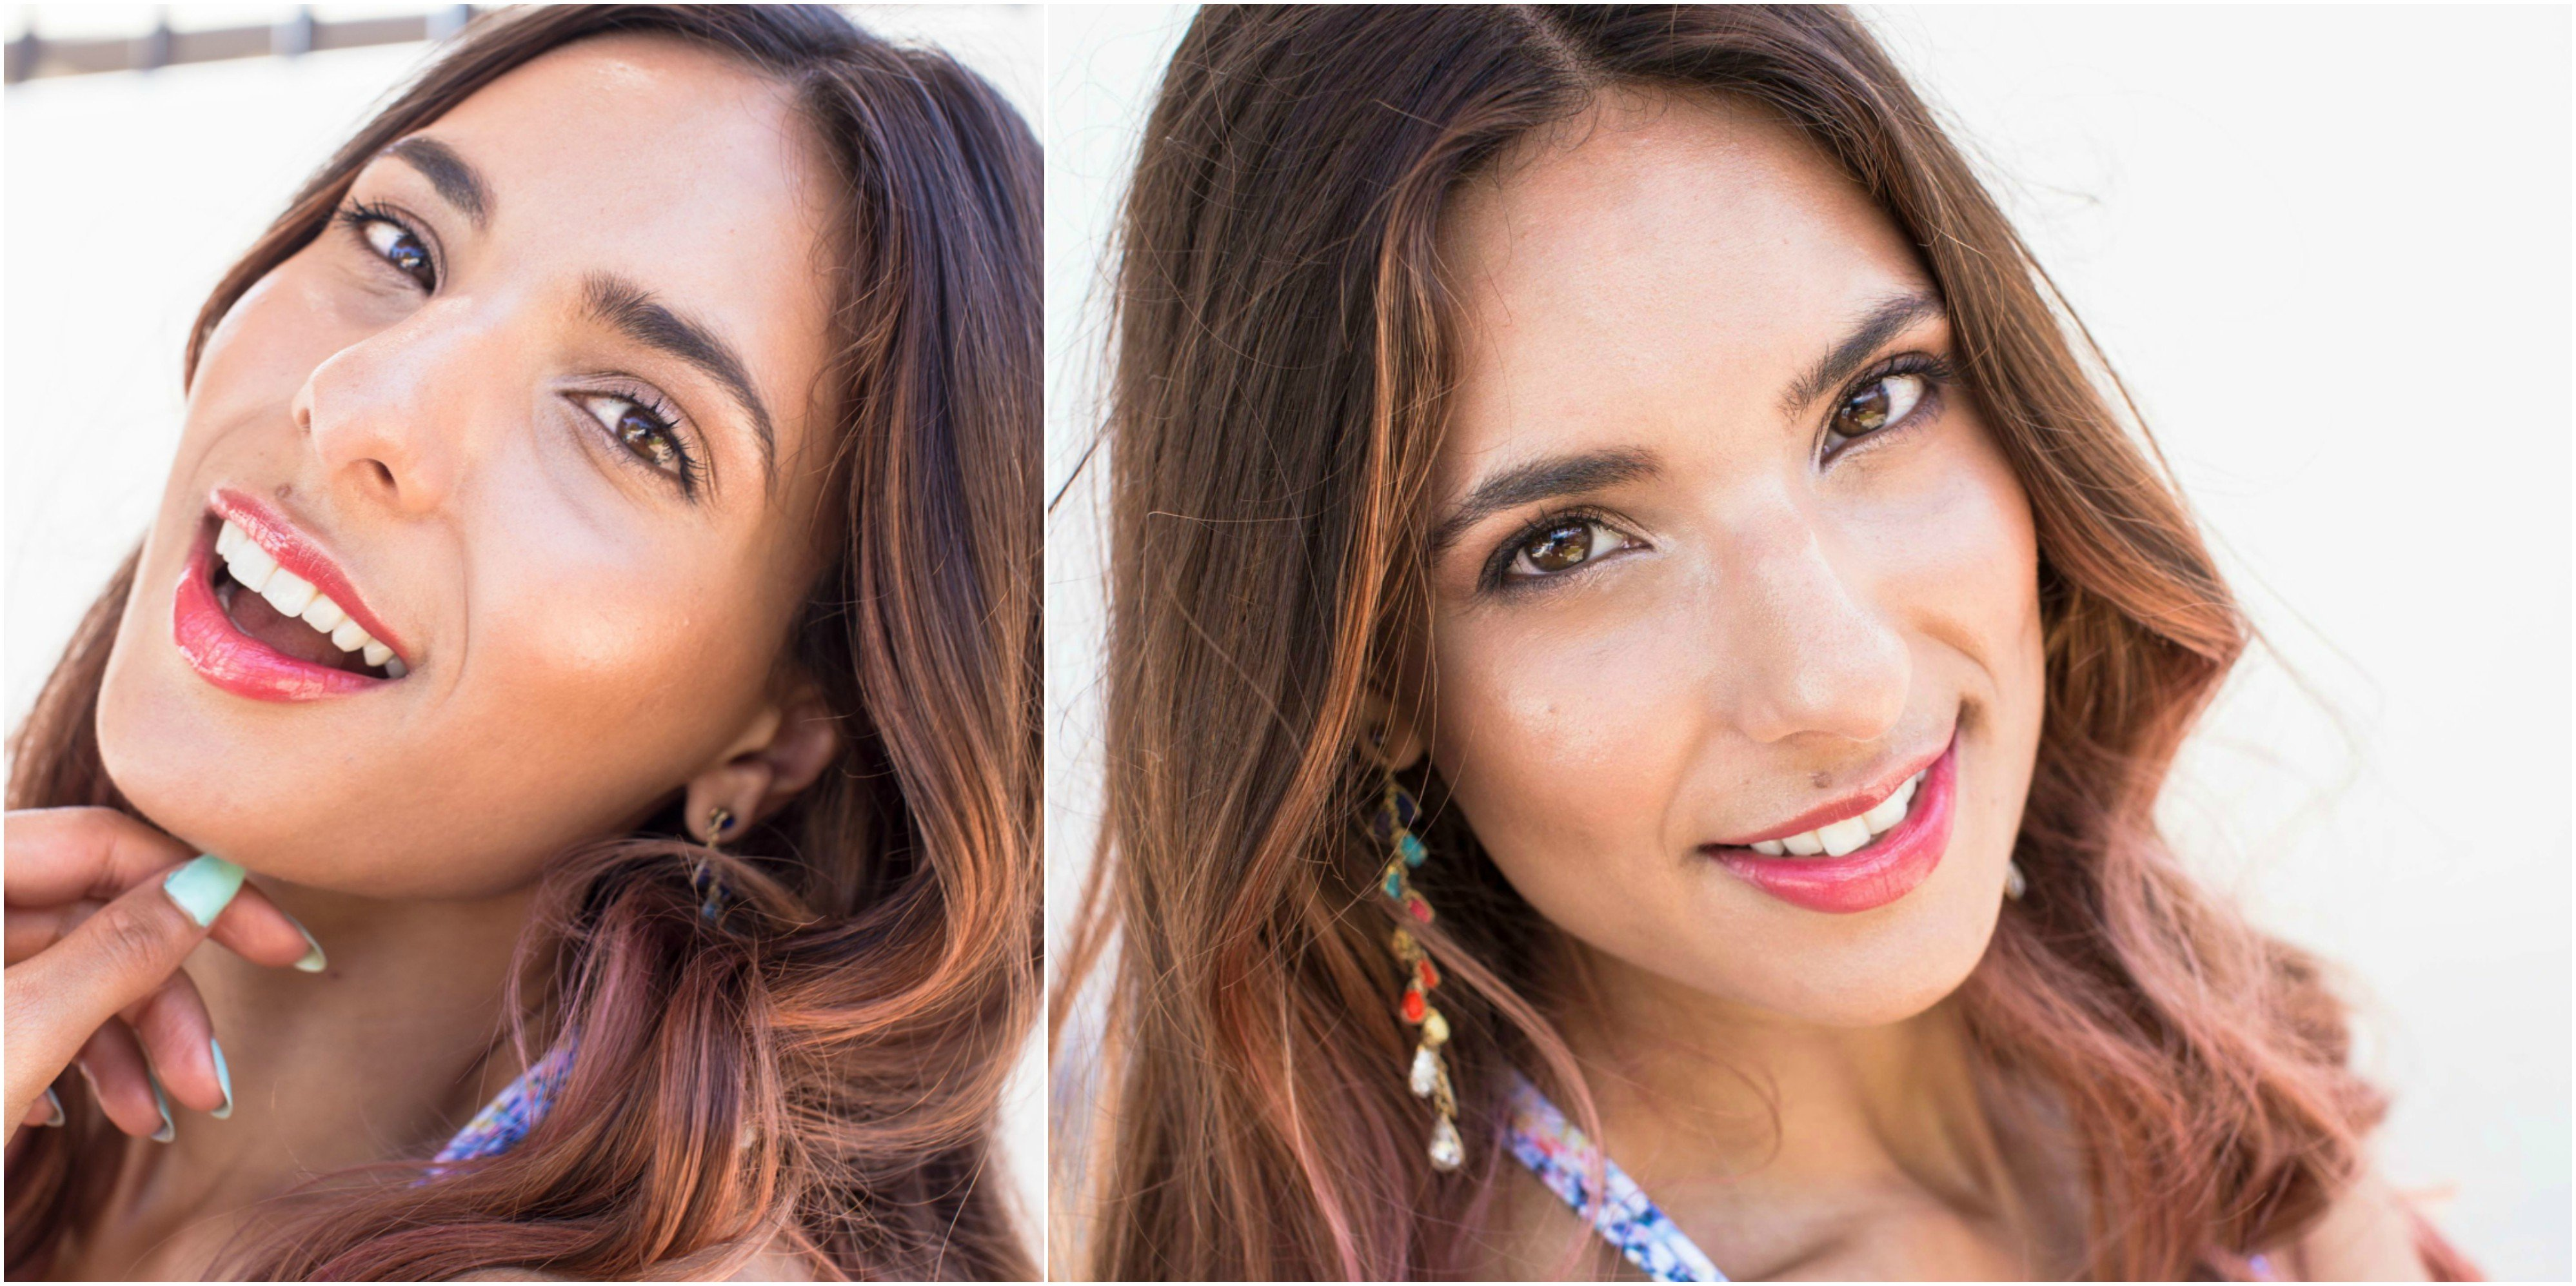 Ottawa Makeup Artist Klava Z creates a Pool Party Makeup Look and shows how to glam it up using only organic makeup